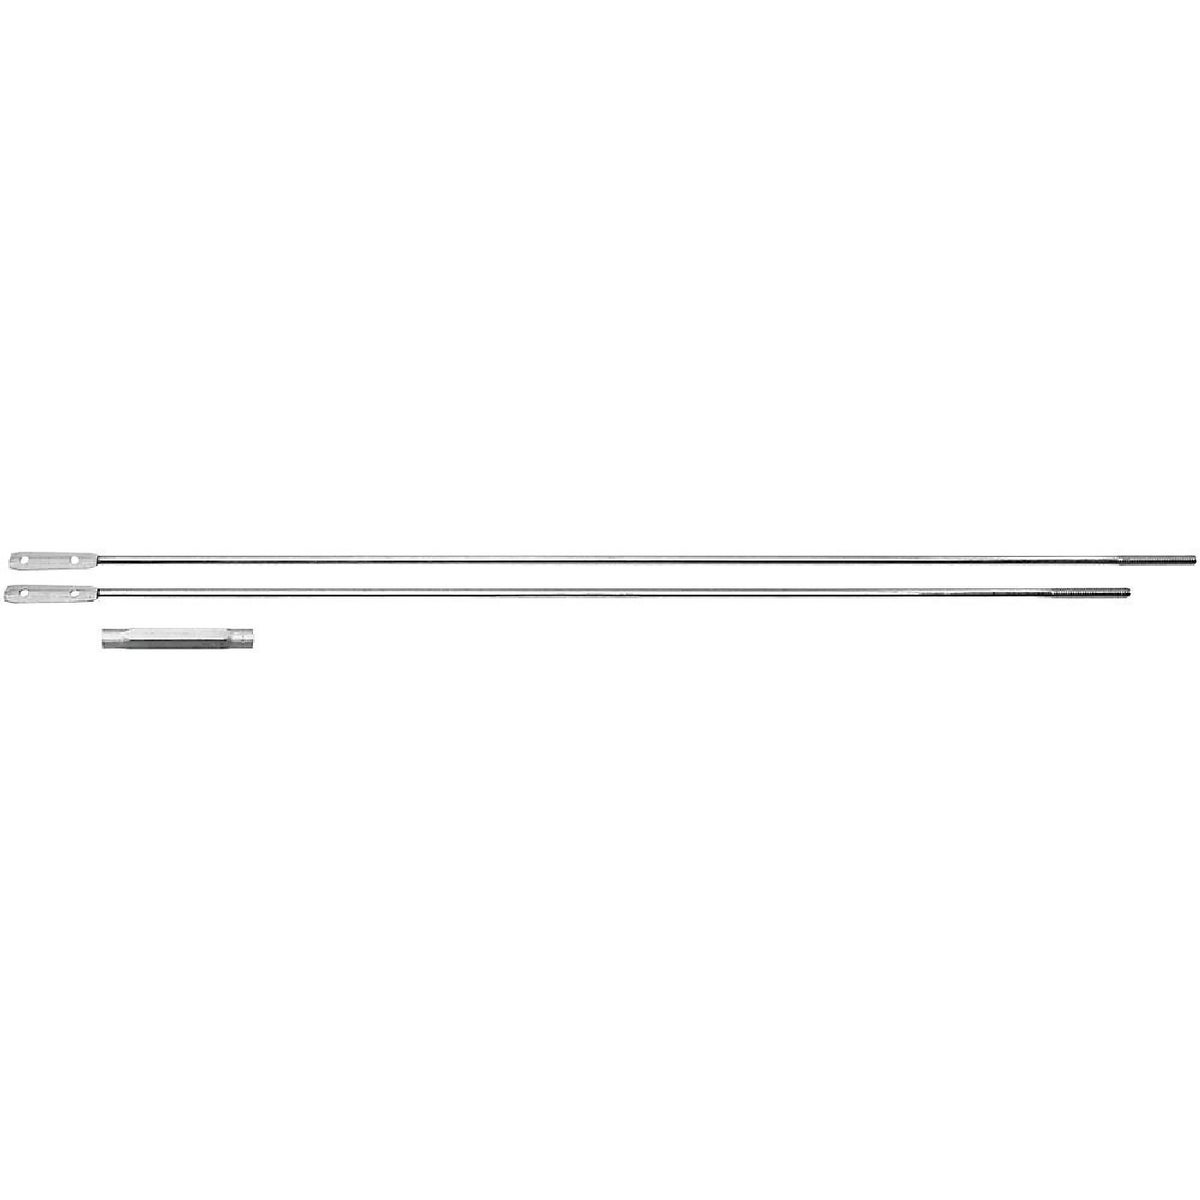 "50"" ZINC TURNBUCKLE - N117580 by National Mfg Co"